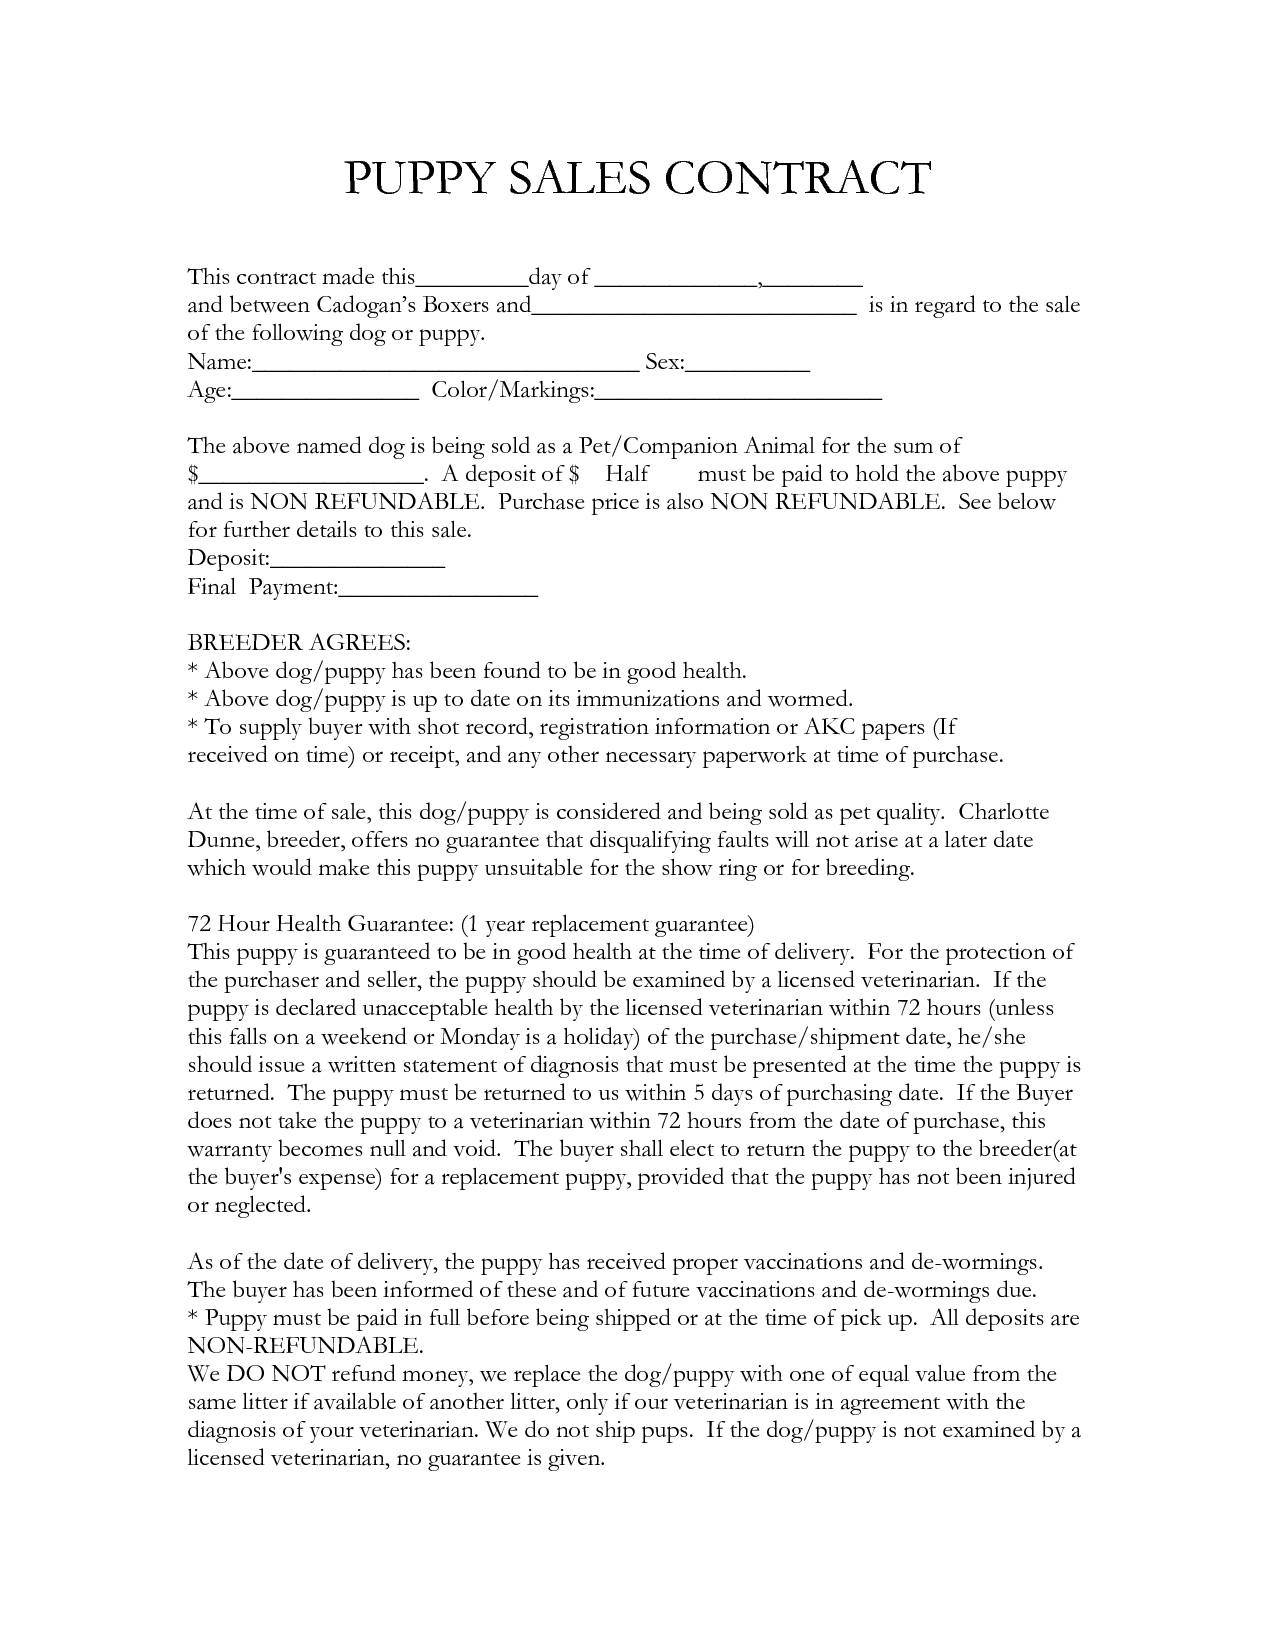 Contract Template | Free Microsoft Word Templates. Sale Contract - Free Printable Puppy Sales Contract